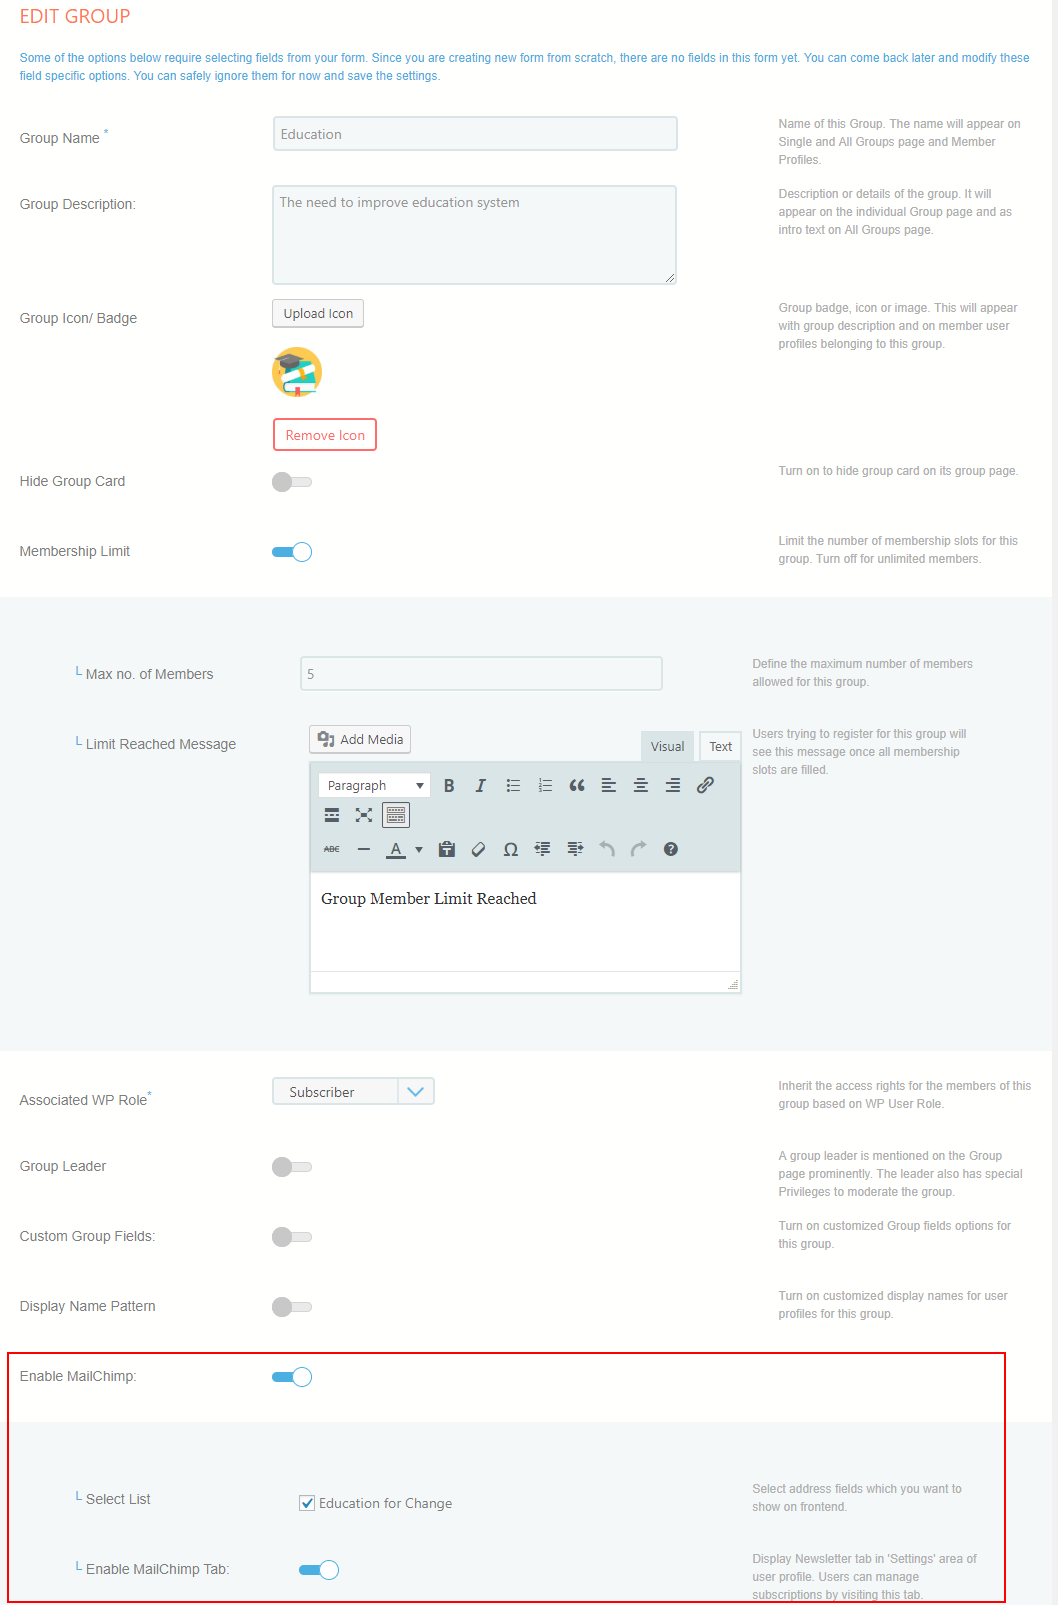 allow users to subscribe MailChimp list edit group